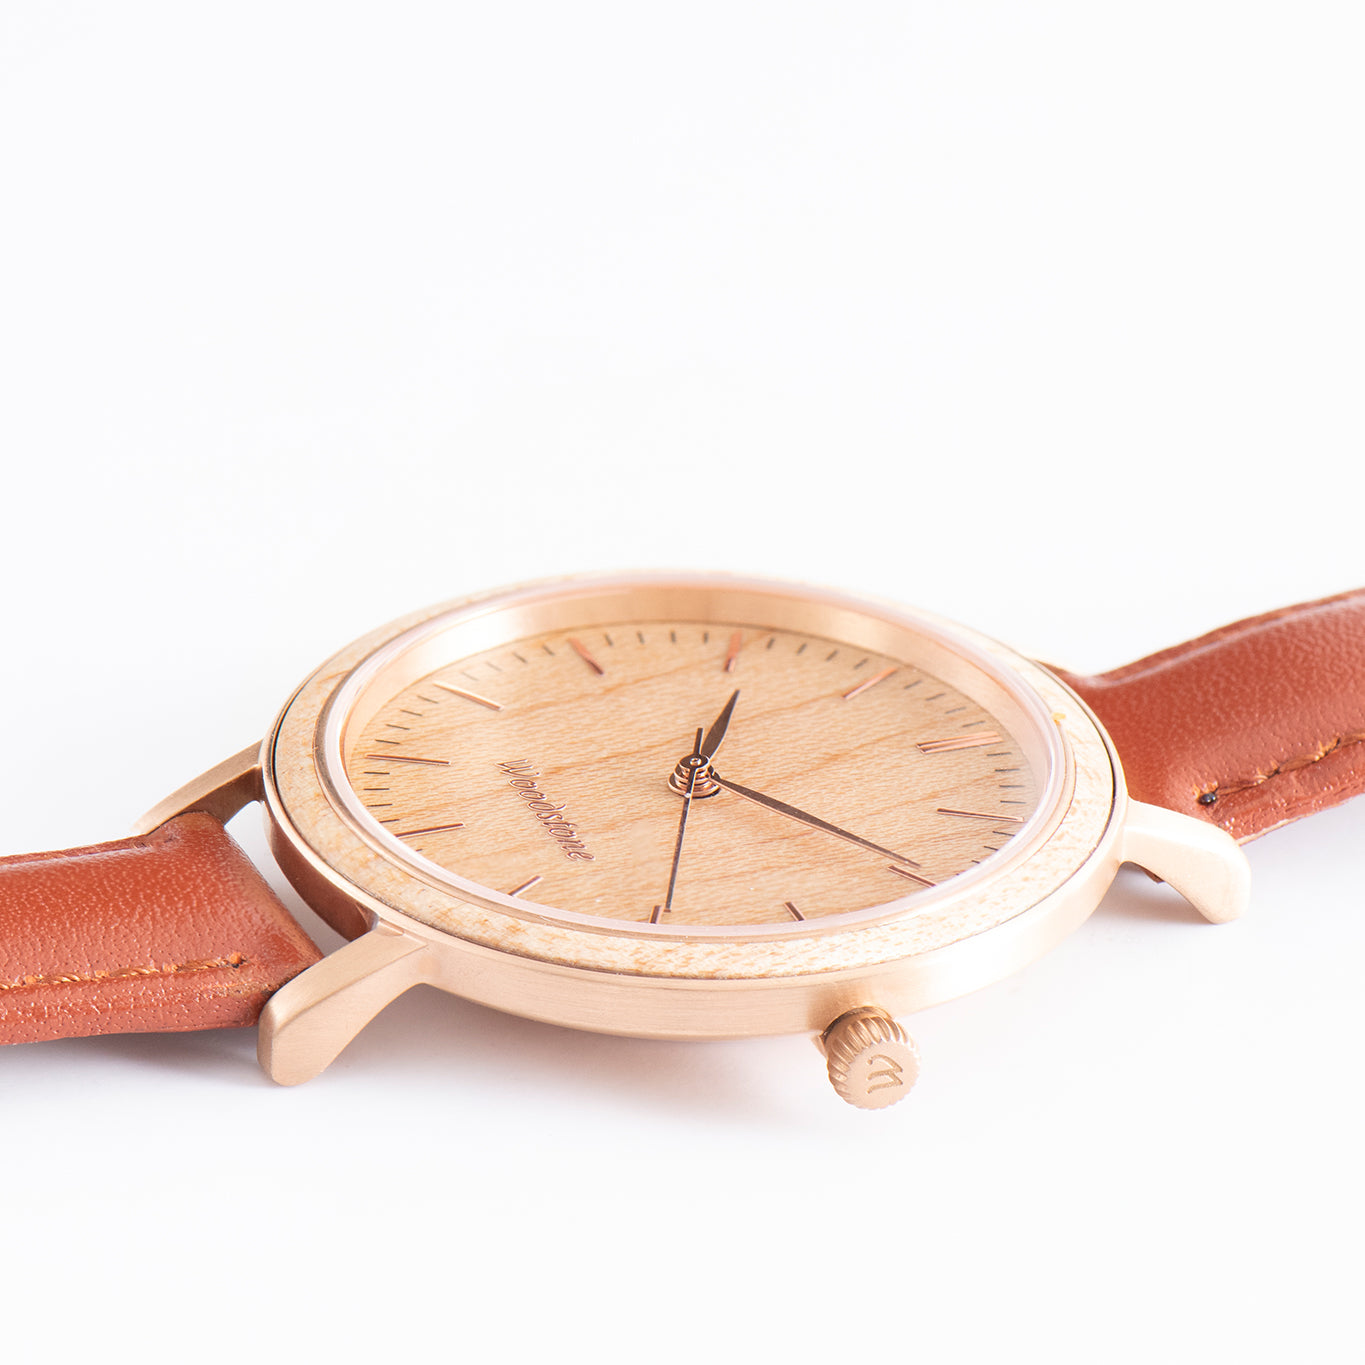 Serenity Maple - Rose Gold Women's Wooden Watch